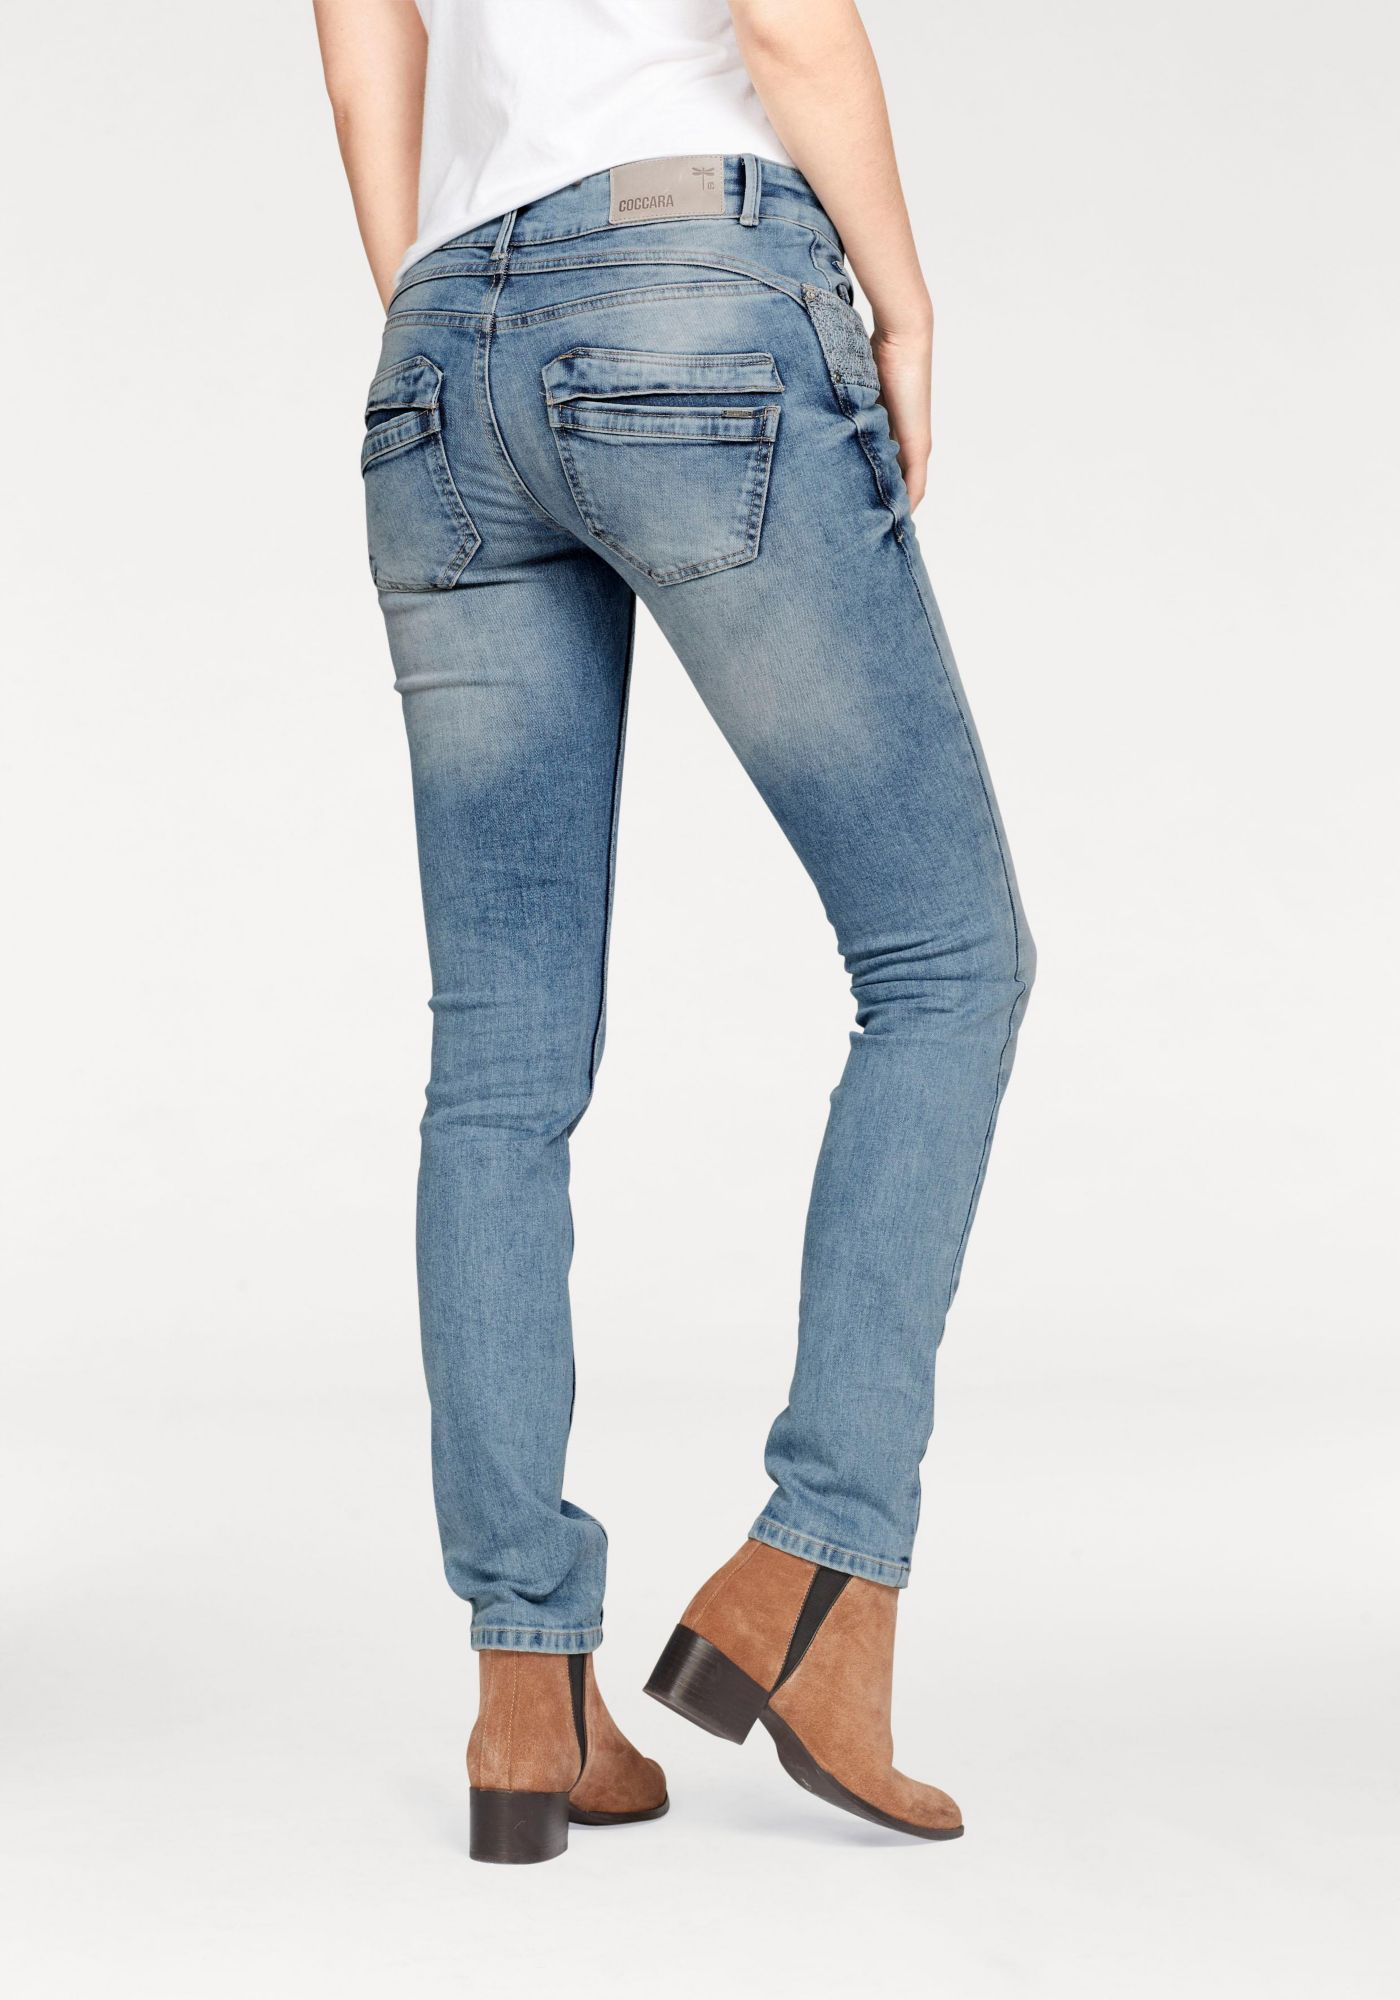 COCCARA Coccara Slim-fit-Jeans »CURLY«